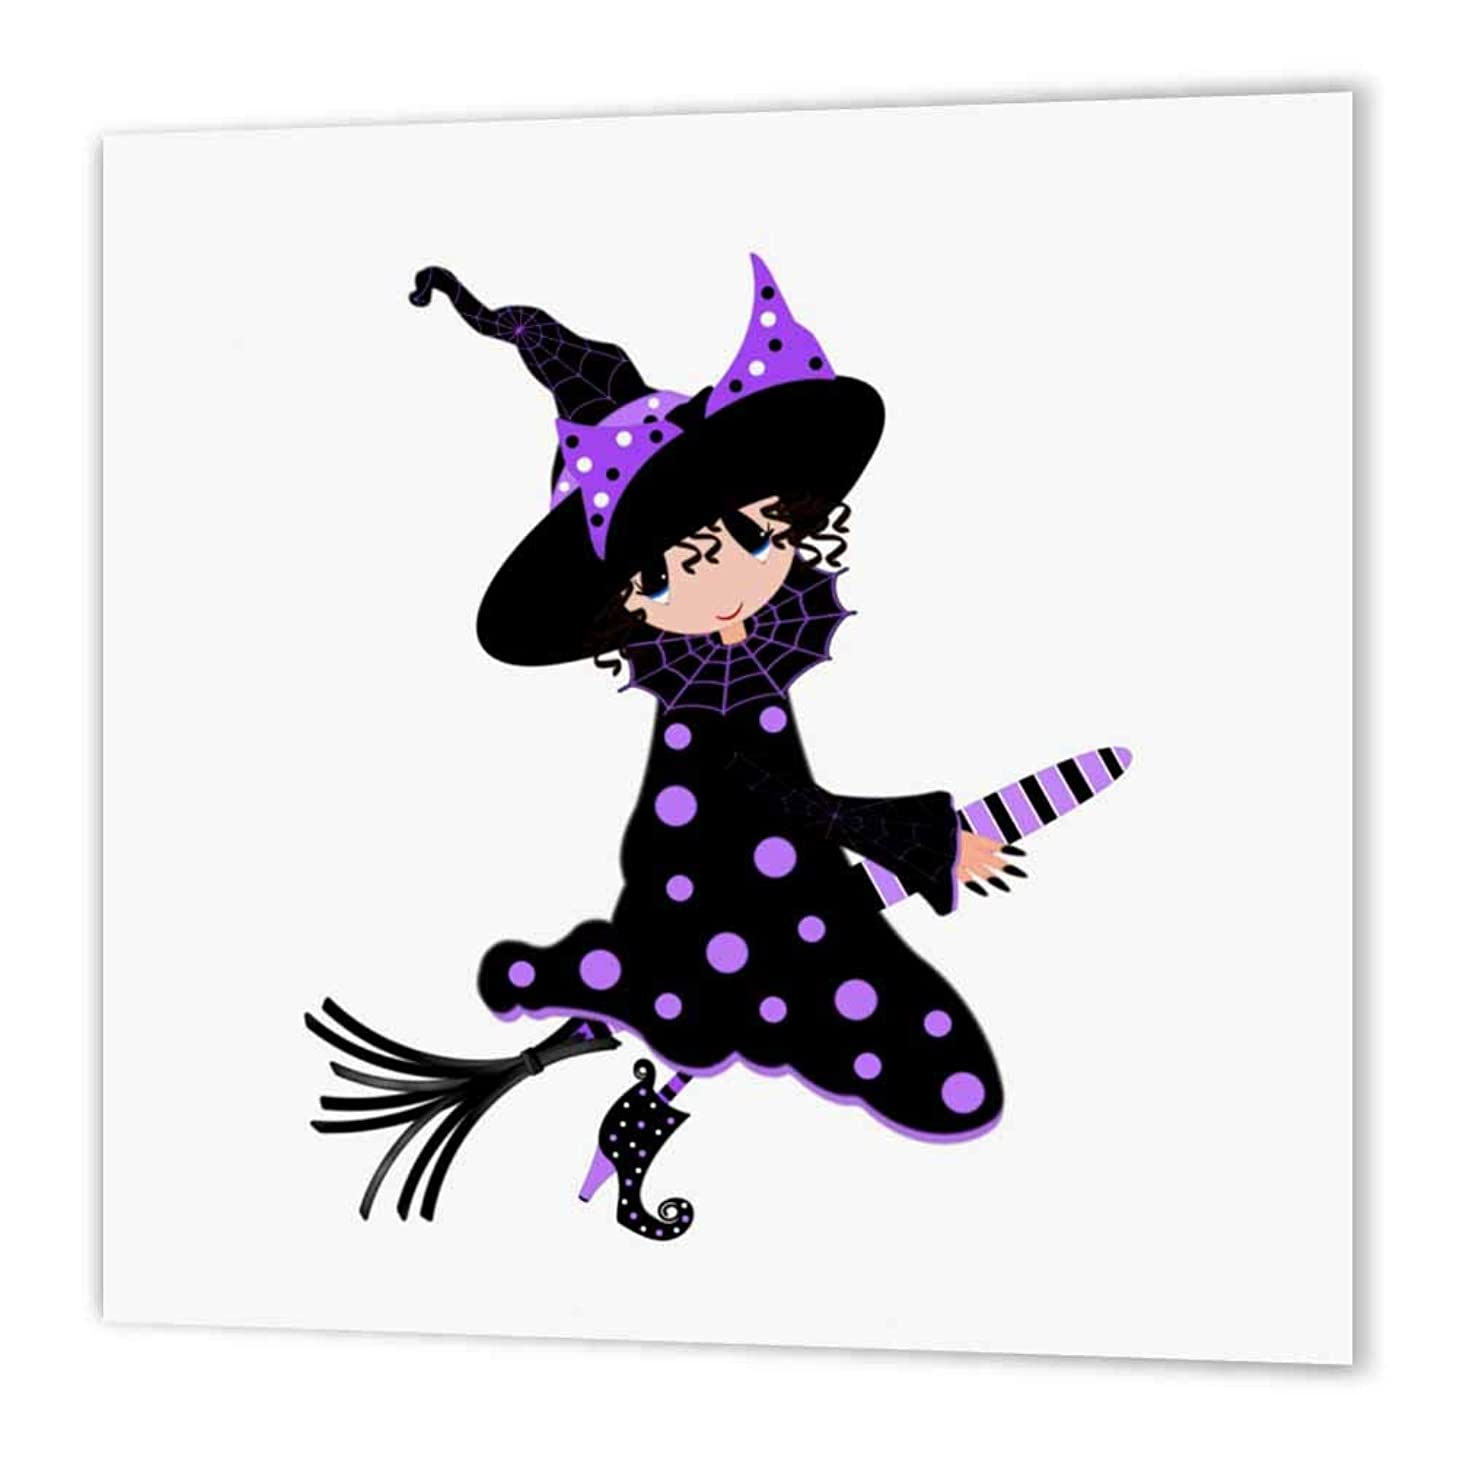 3dRose ht_56026_1 Cutest Little Witch-Iron on Heat Transfer Paper for White Material, 8 by 8-Inch